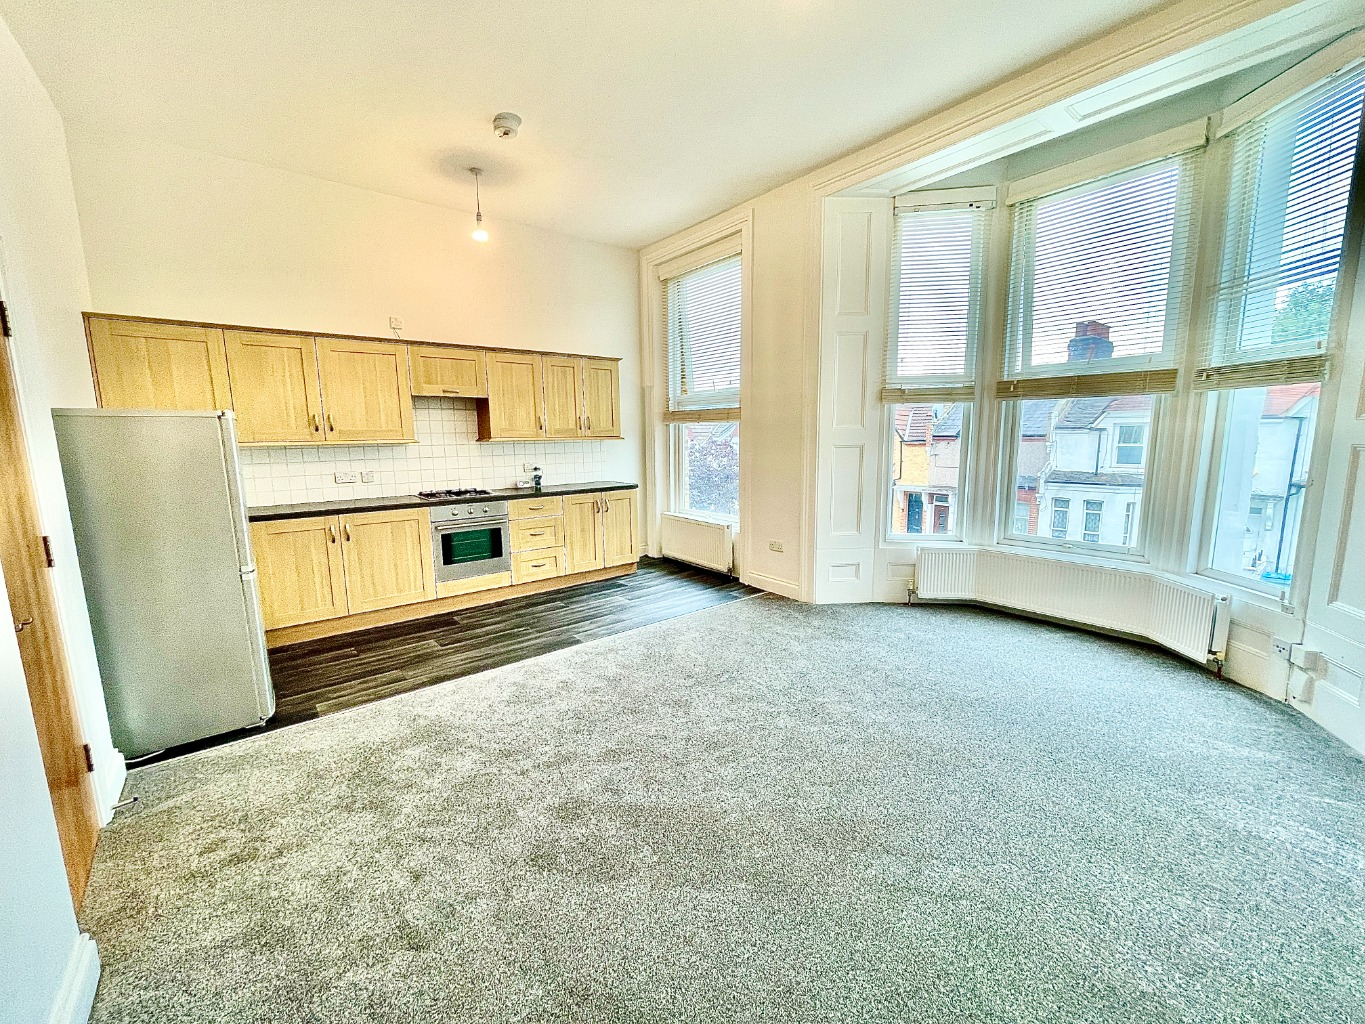 1 bed apartment to rent in Vicarage Park, London, SE18